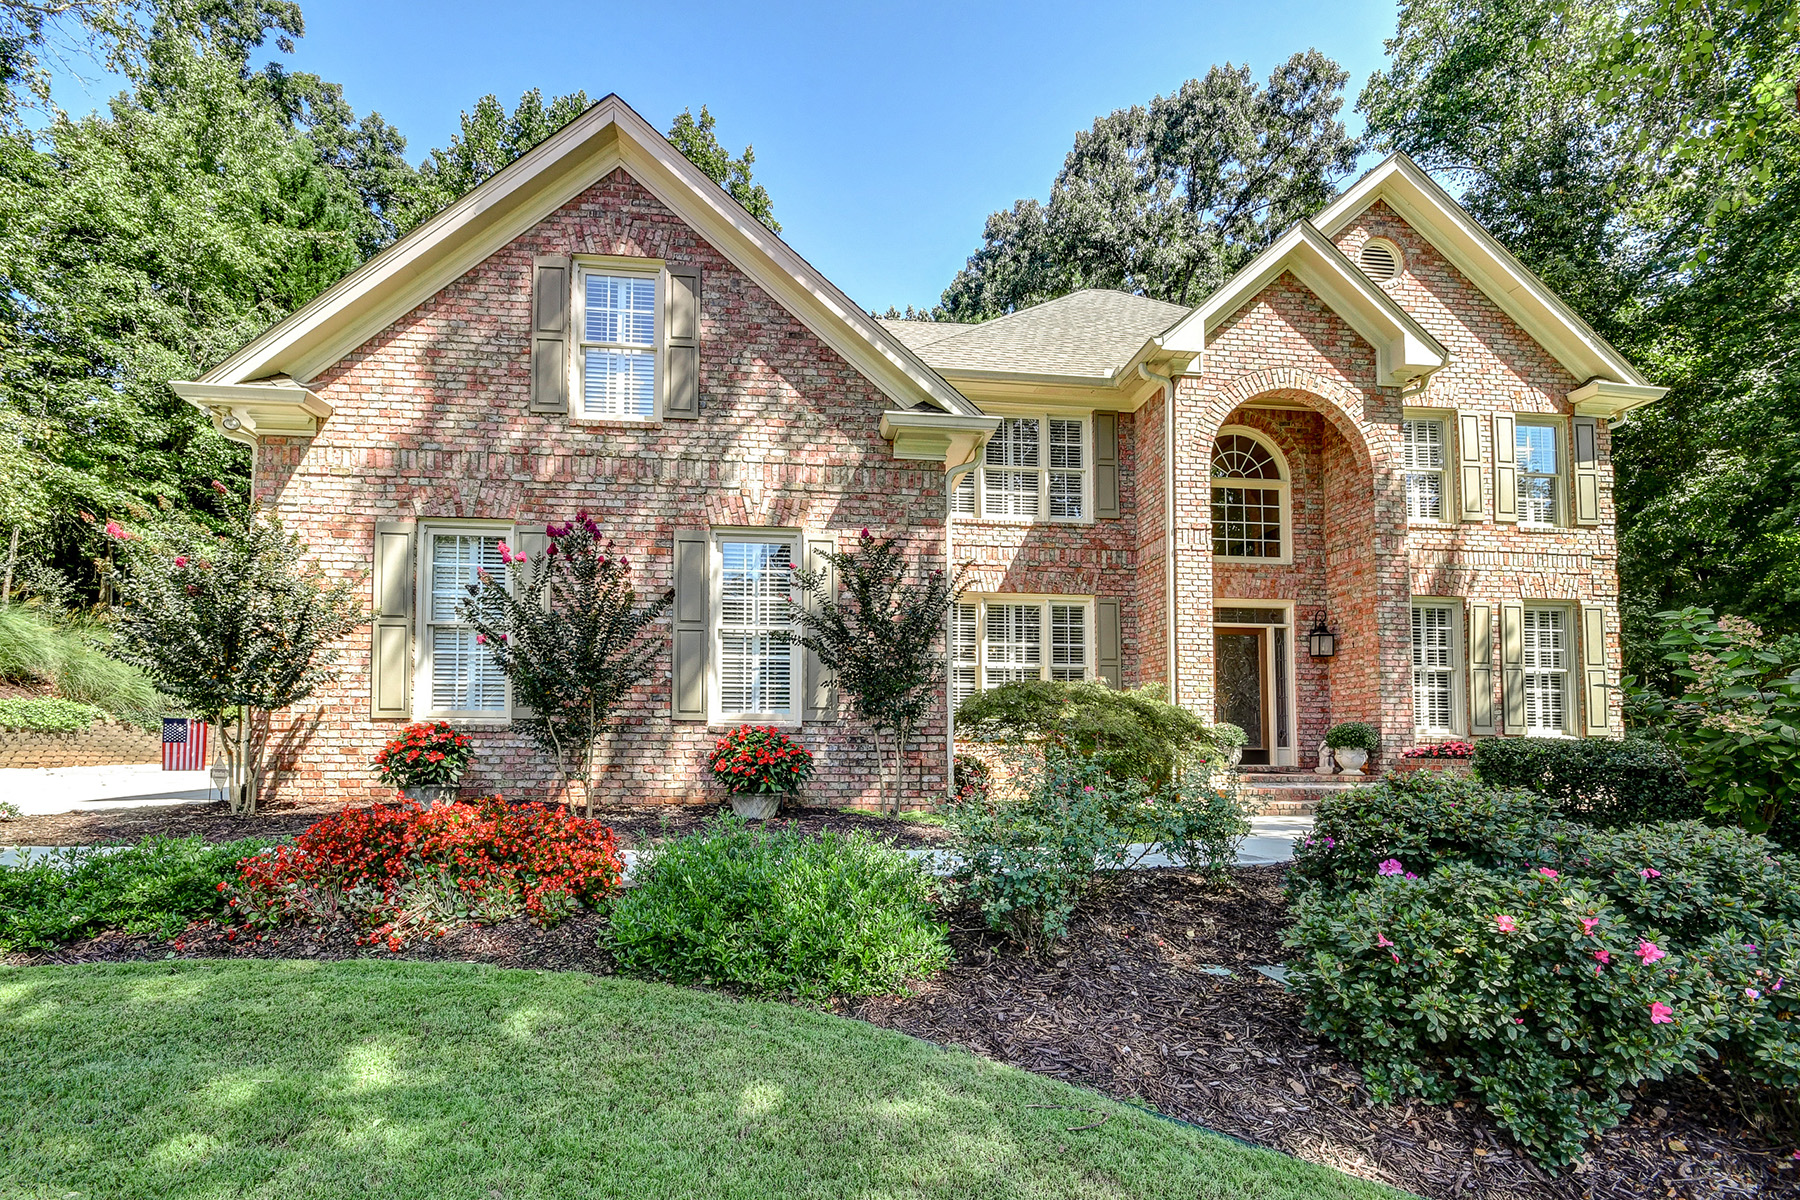 Single Family Homes for Sale at Executive Home In Prime Location Minutes From GA 400 And Lake Lanier 1735 Rising Mist Lane Cumming, Georgia 30041 United States